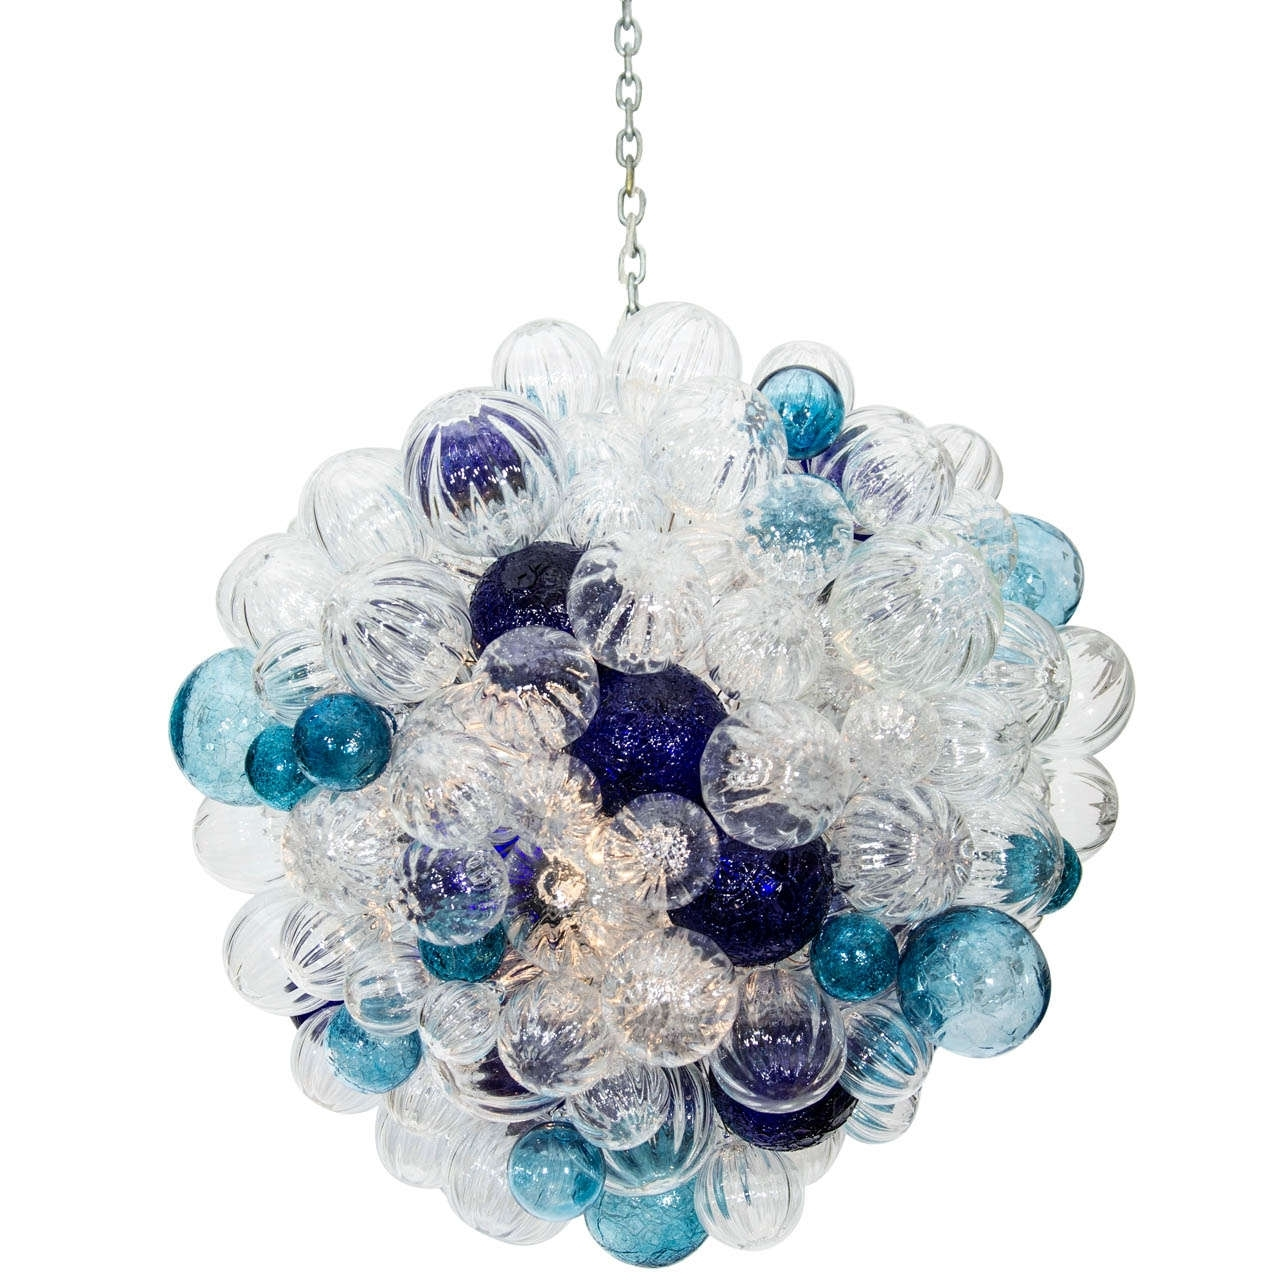 Interior: Attractive Blue White Glass Bubble Chandelier With Chain Throughout Most Recently Released Turquoise Bubble Chandeliers (Gallery 15 of 15)